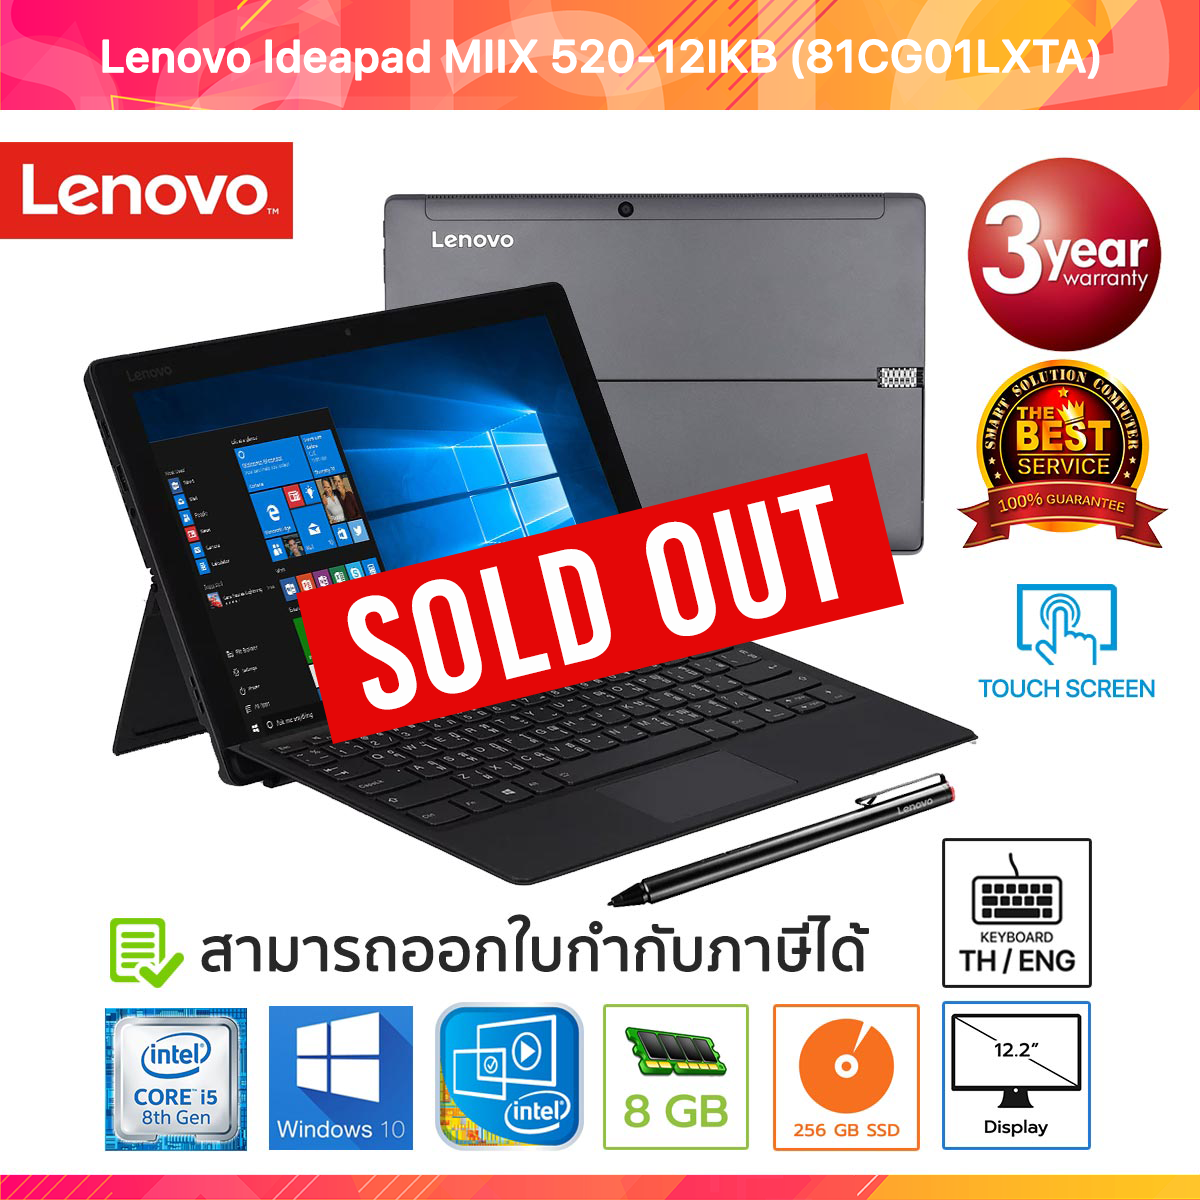 Lenovo Ideapad MIIX 520-12IKB (81CG01LXTA) i5-8250U/8GB/256GB SSD/12.2/Win10/WiFi (Iron Grey)